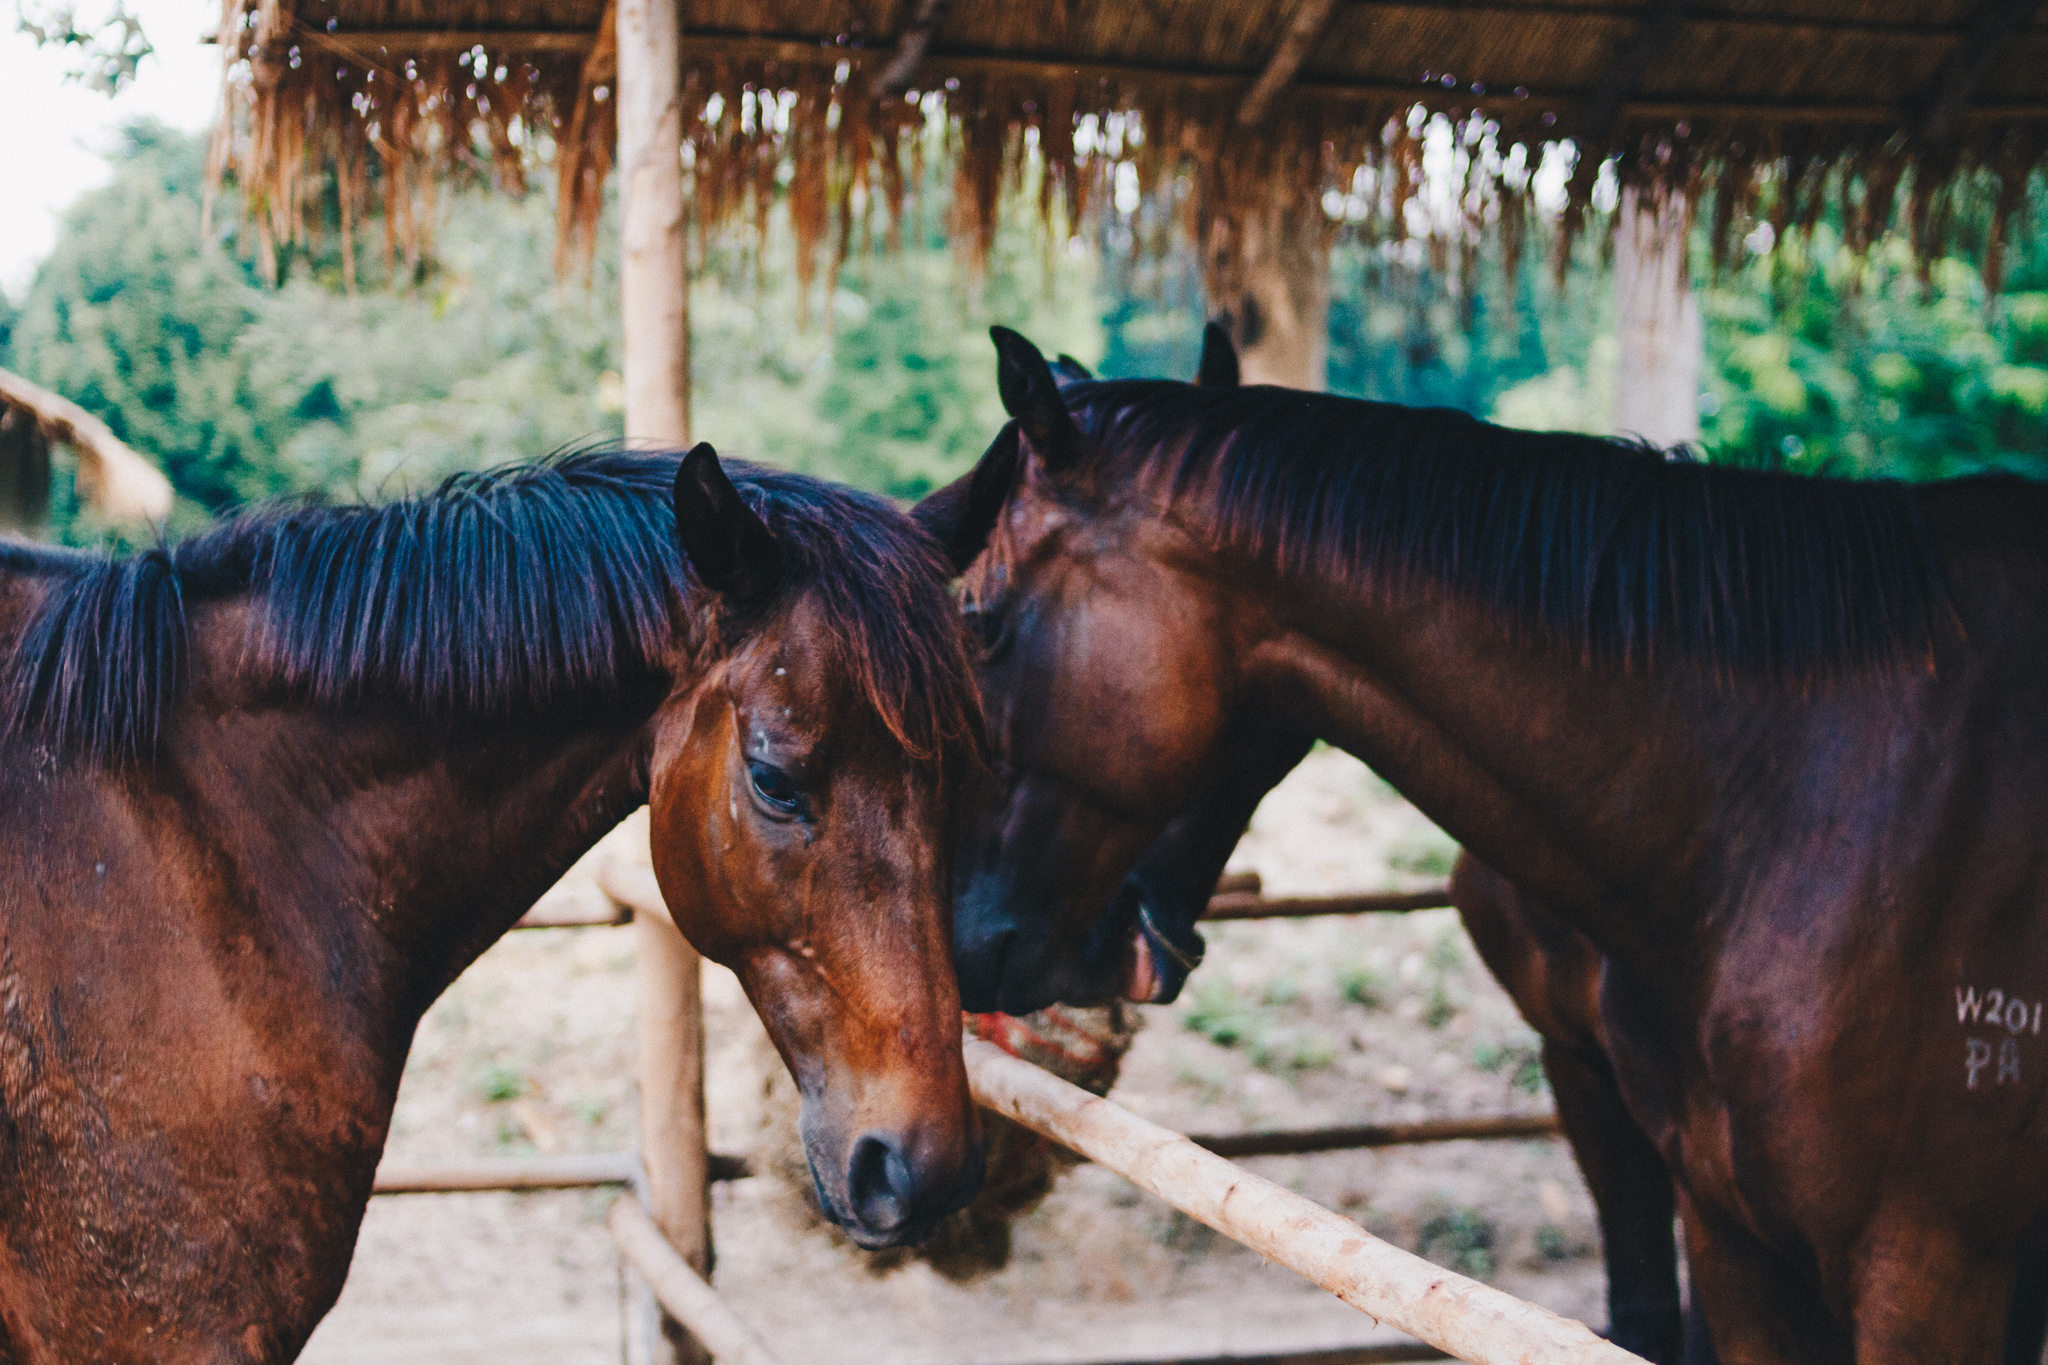 Second-Wind-Horse-Rescue-Ranch-ChaingMai-Suniko-Photo-October-2018-73.jpg